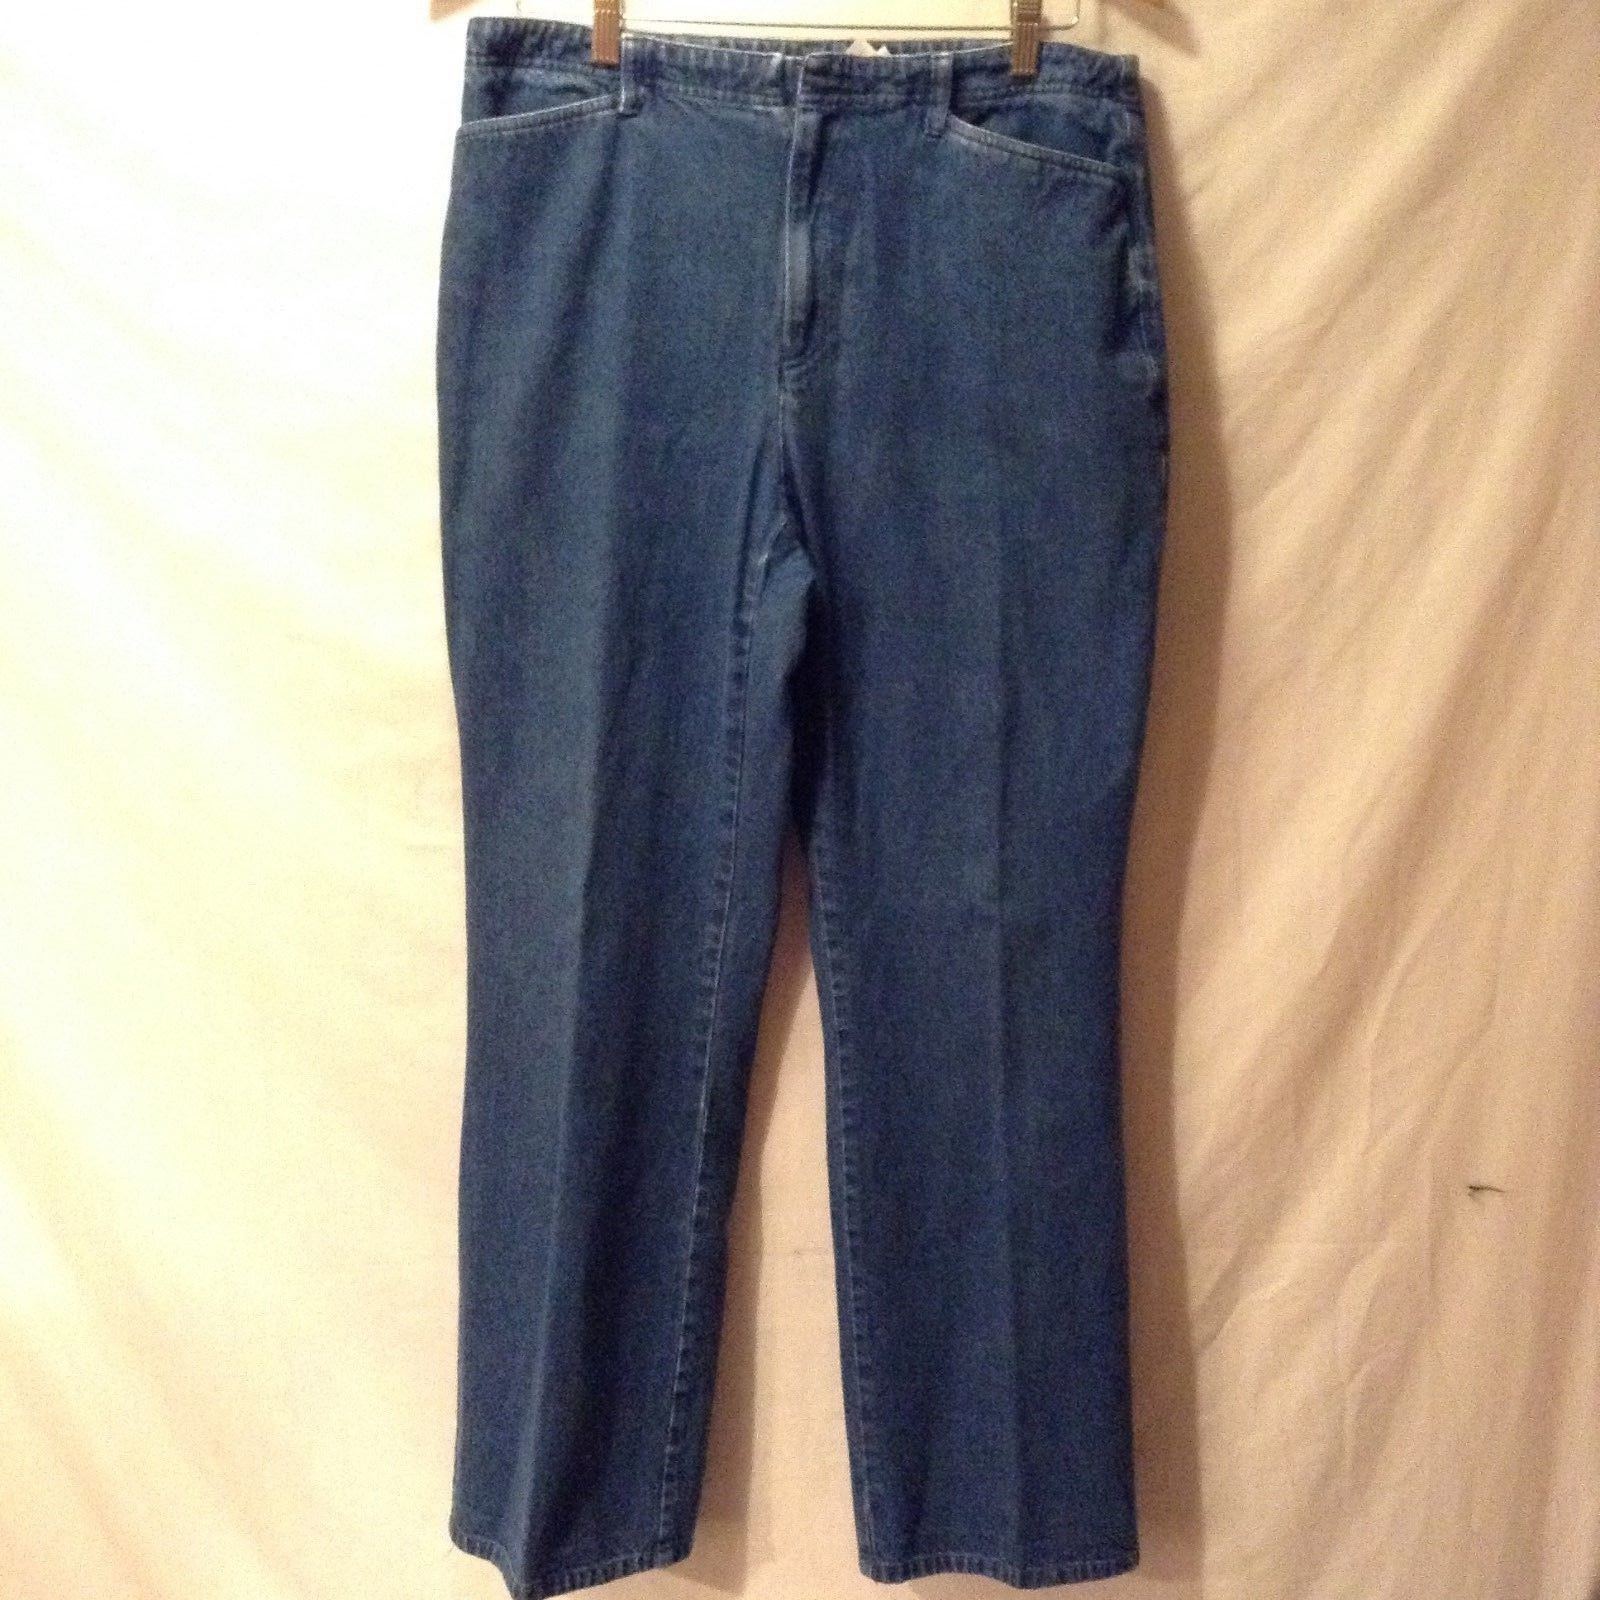 Liz Claiborne Ladies Blue Jeans Sz 14